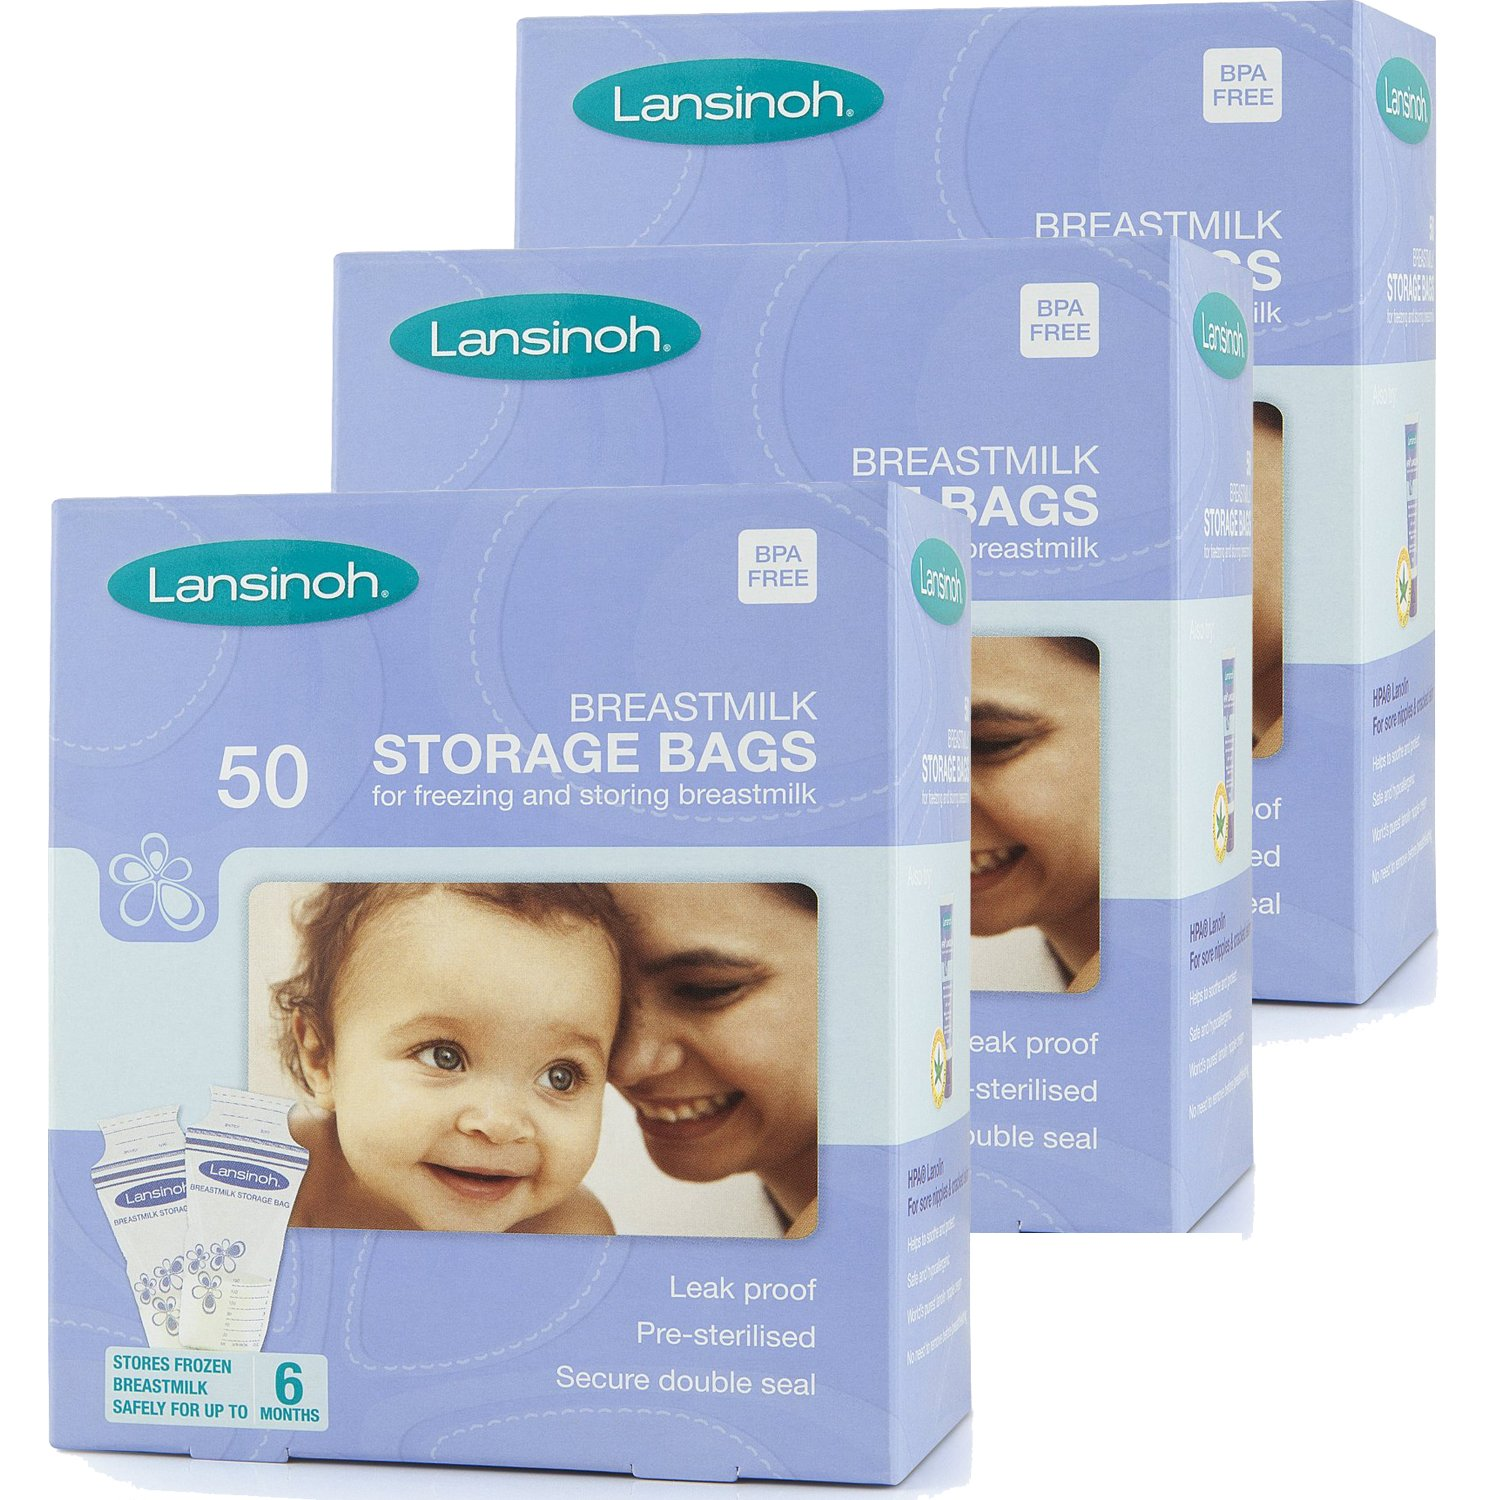 Lansinoh Breastmilk Storage Bags (50 Pieces) (Pack of 3) [Personal Care]